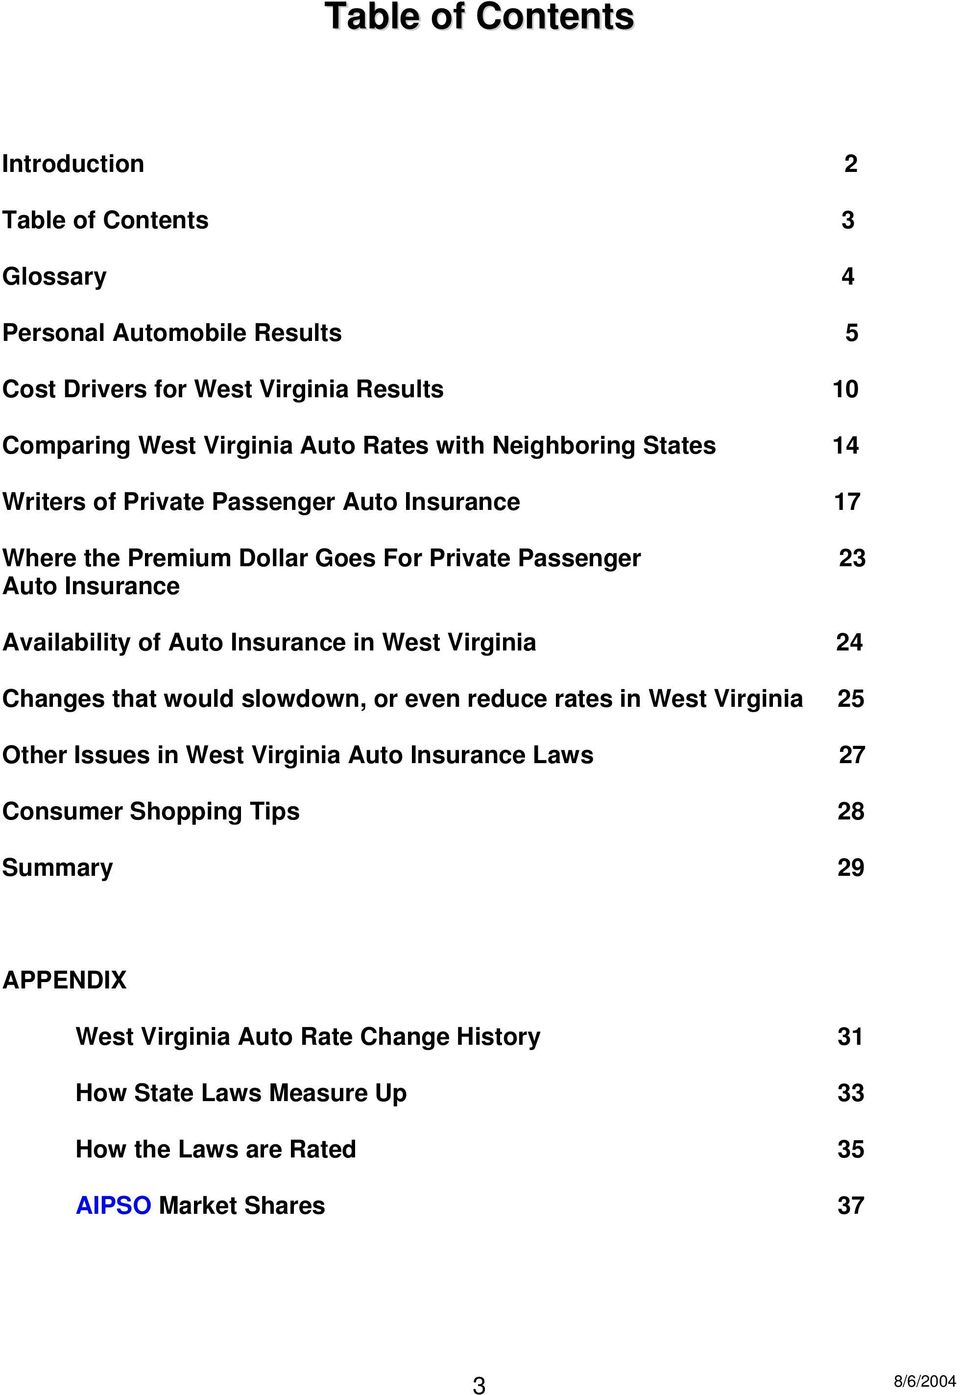 Availability of Auto Insurance in West Virginia 24 Changes that would slowdown, or even reduce rates in West Virginia 25 Other Issues in West Virginia Auto